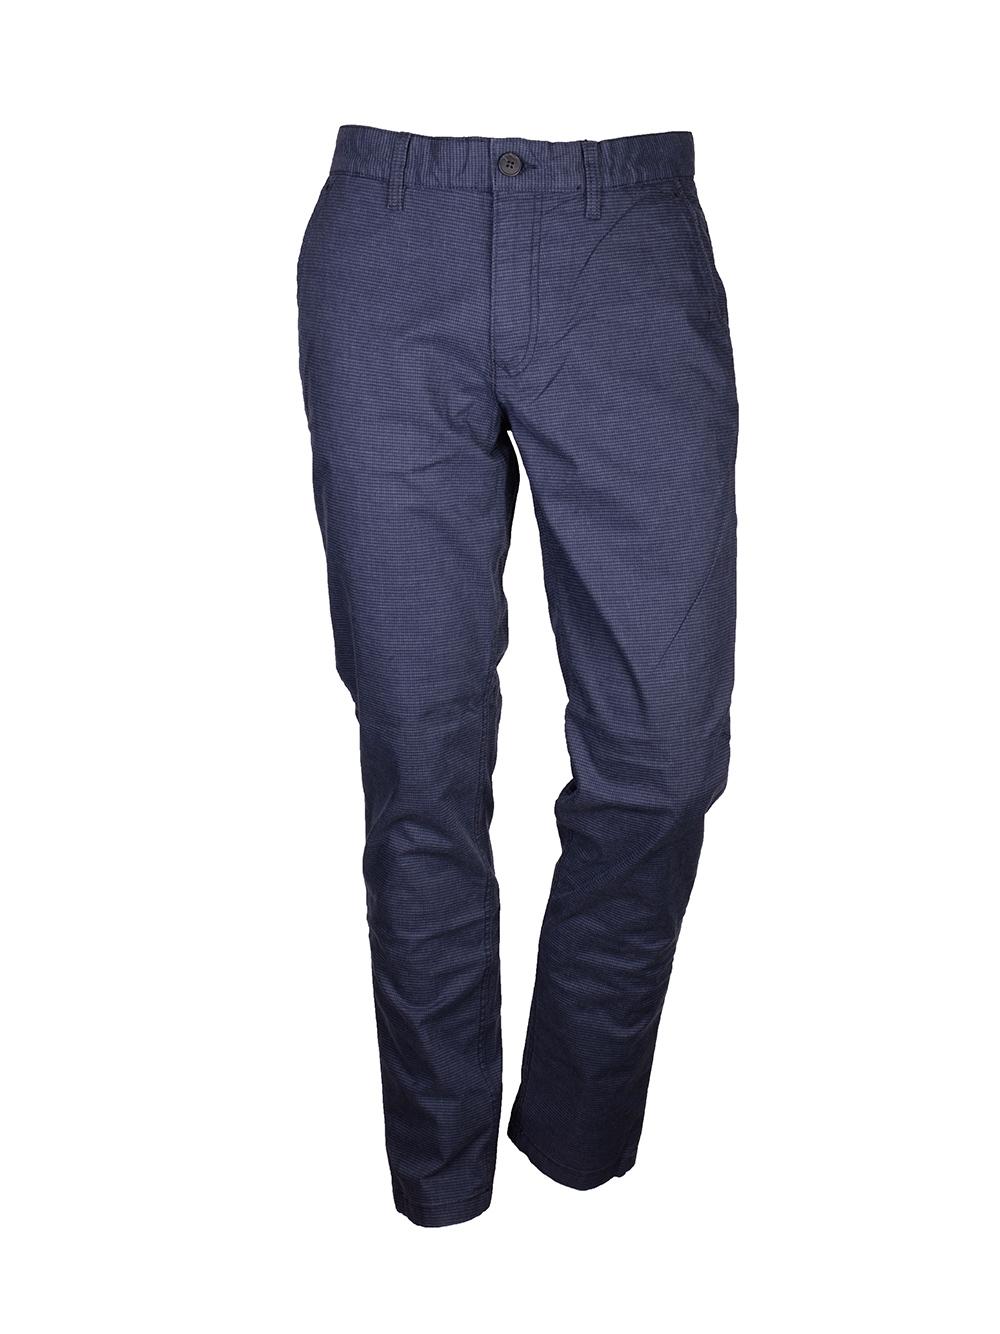 SELECTED Παντελόνι chinos 16069296 ΜΠΛΕ